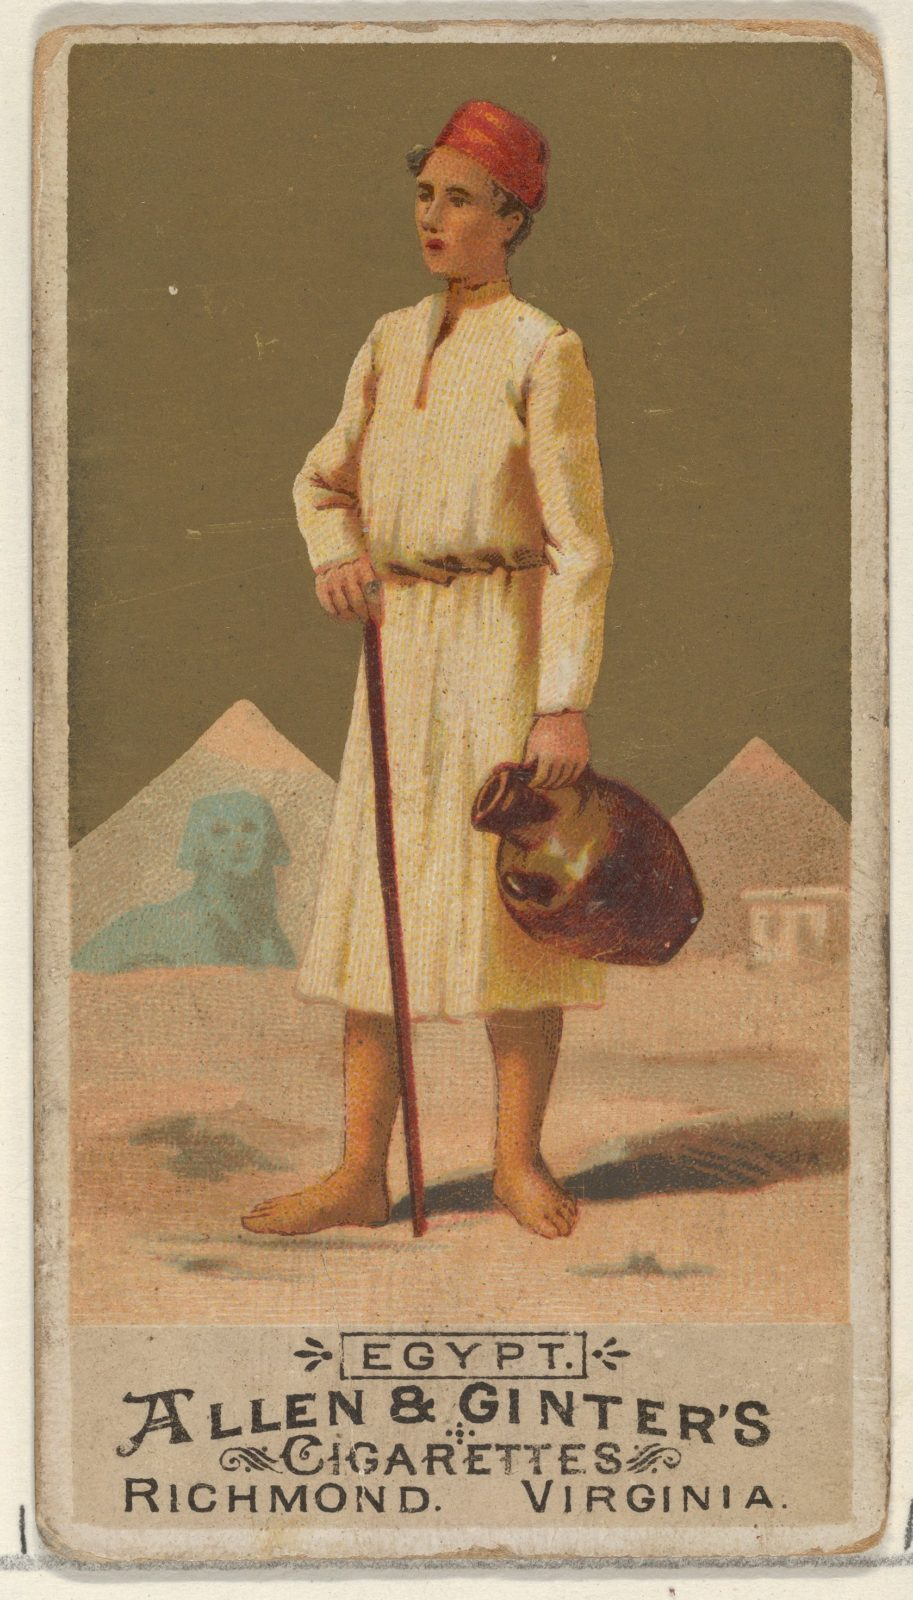 Egypt, from the Natives in Costume series (N16) for Allen & Ginter Cigarettes Brands